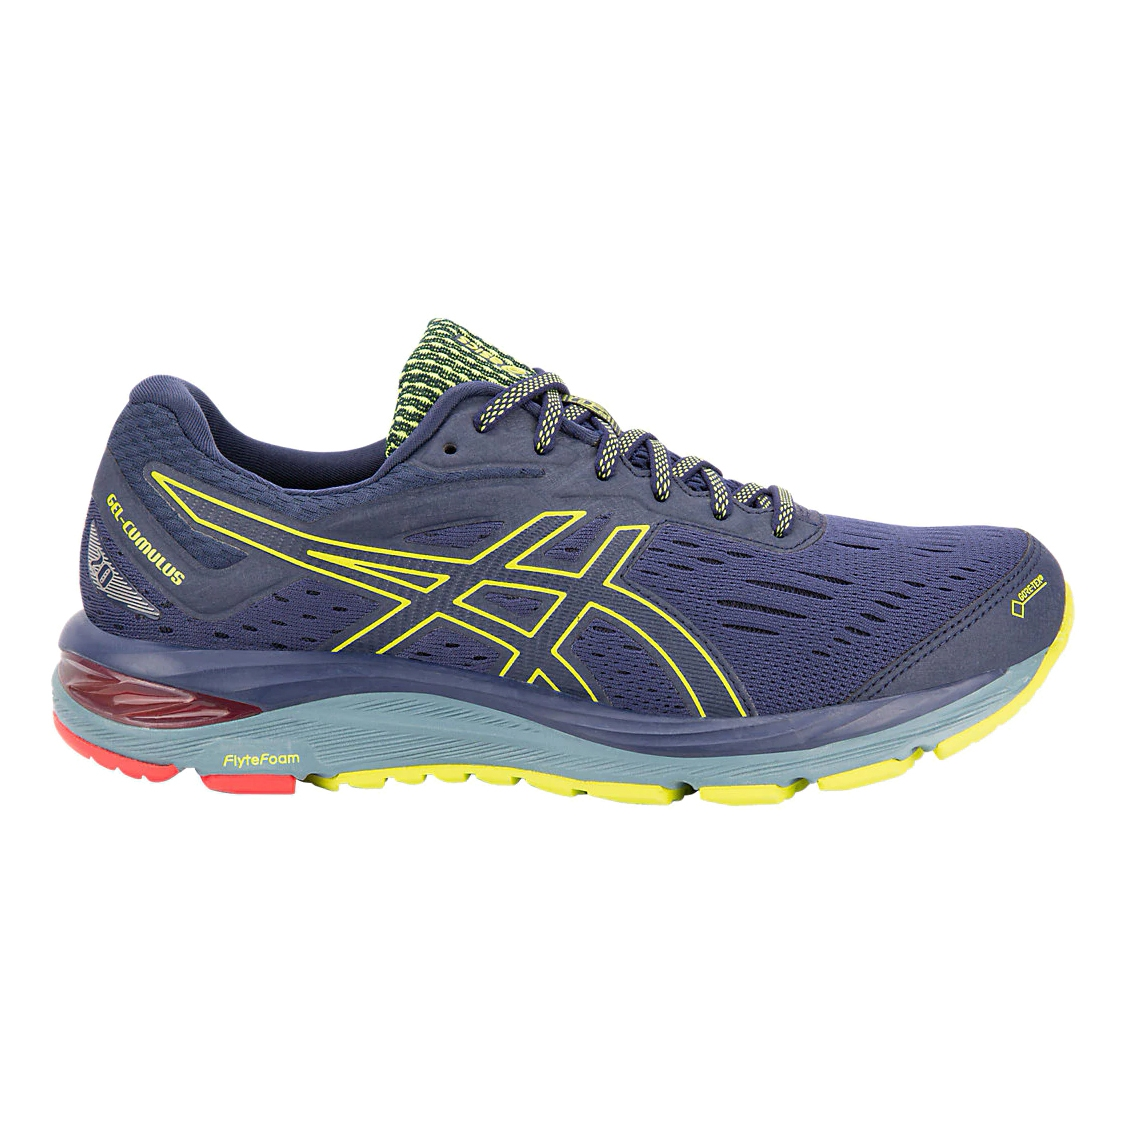 ASICS Running Shoes (GEL-CUMULUS 20 G-TX) Men's TmallFS SportFS цены онлайн